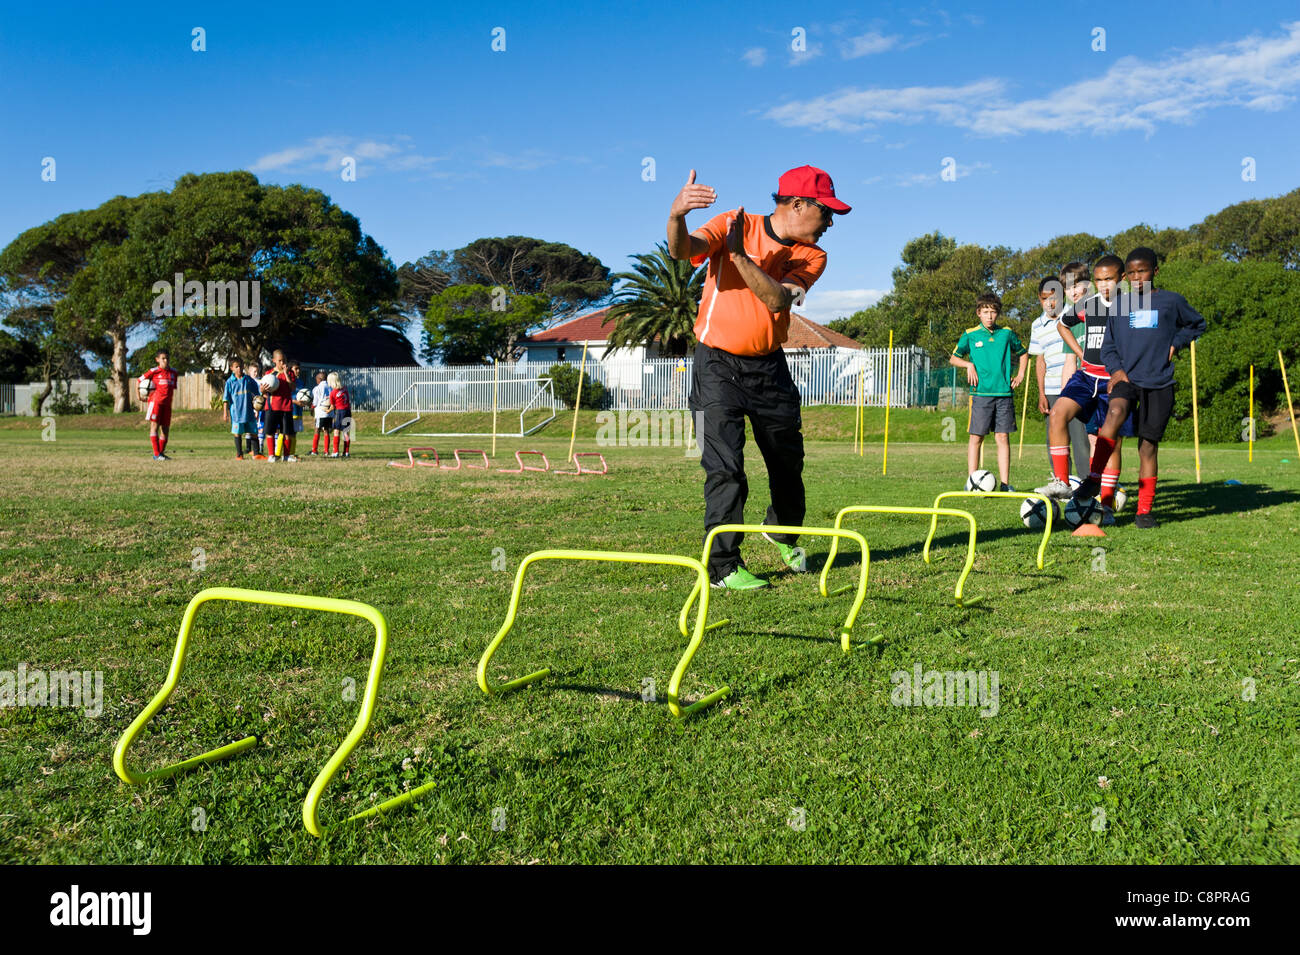 Football coach instructing junior players practicing skills Cape Town South Africa - Stock Image